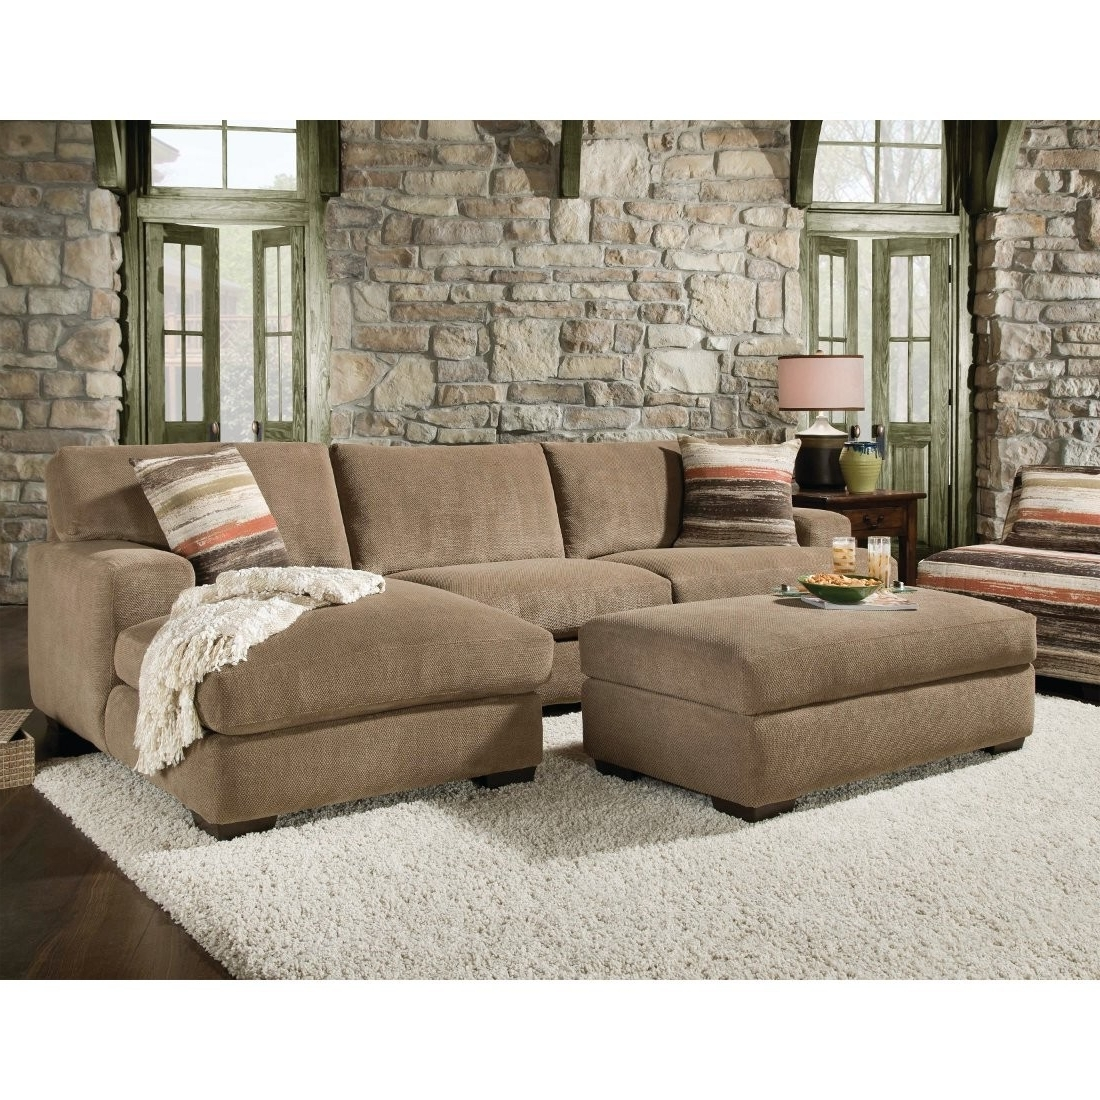 Small Couches With Chaise With Famous Sofa ~ Luxury Leather Sofa With Chaise Lounge Cute Small Sectional (View 7 of 15)